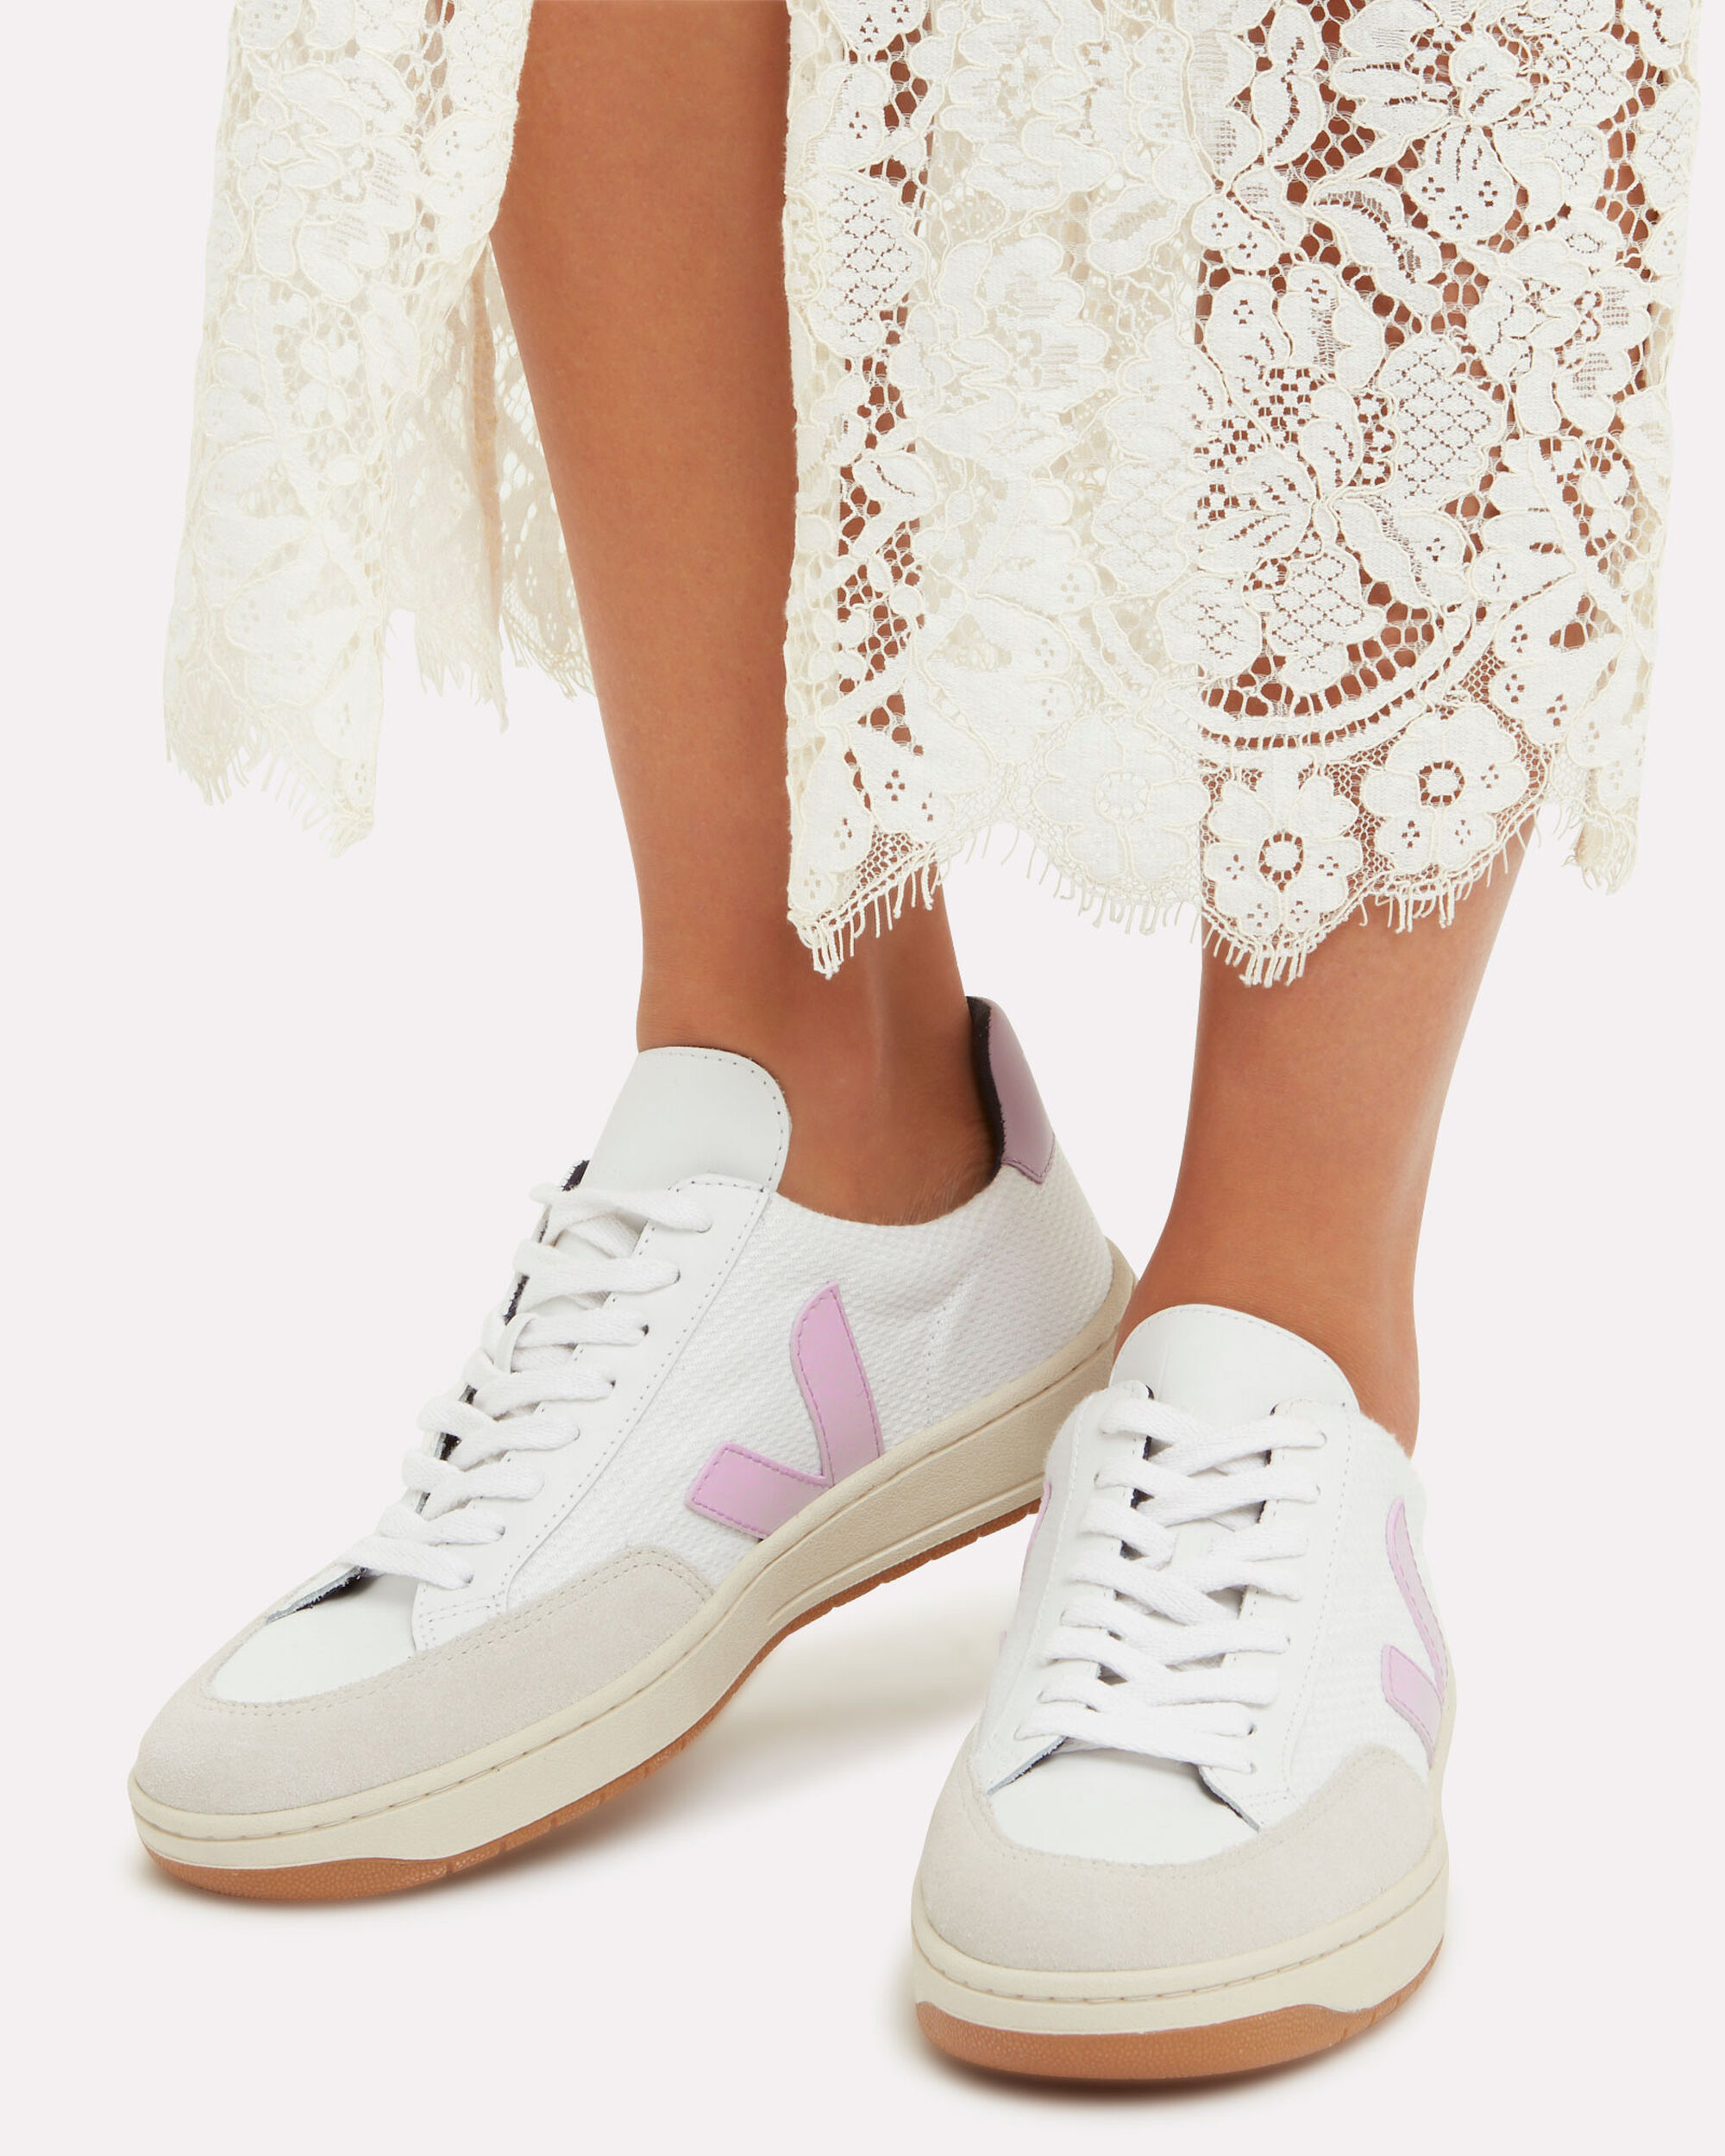 V-12 Purple Detailed Low-Top Sneakers, WHITE, hi-res